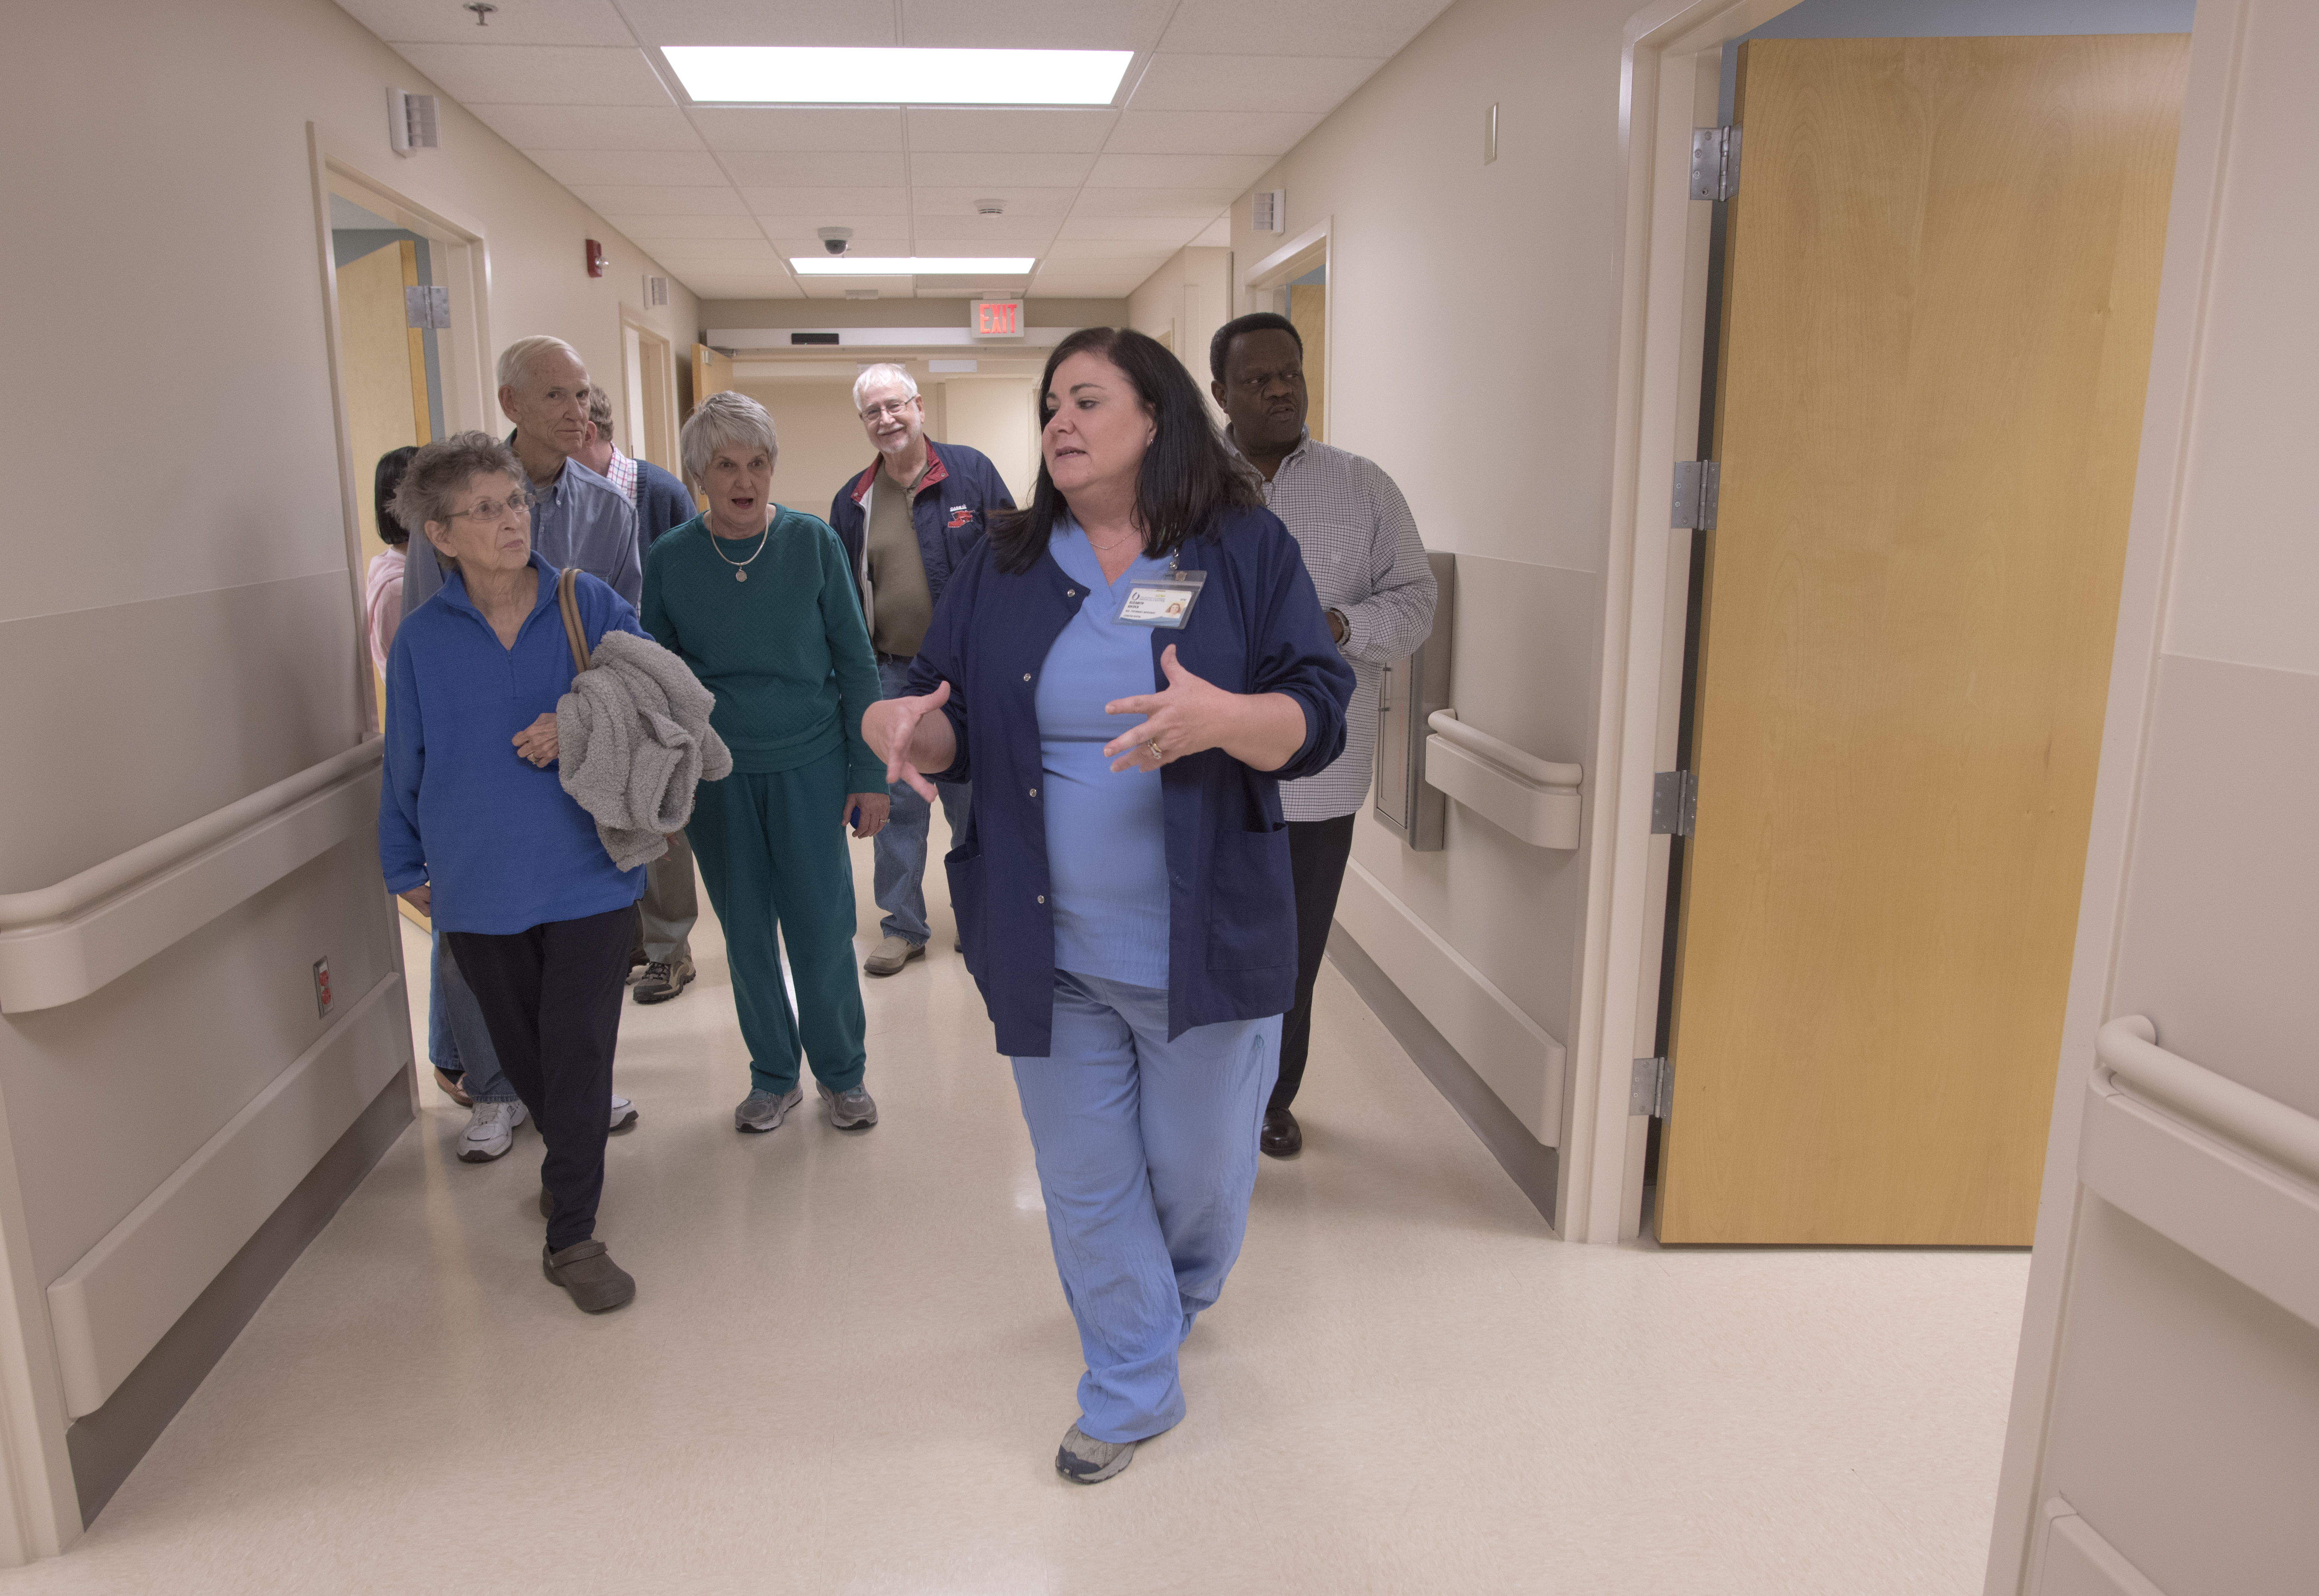 Elizabeth Adcock, manager of performance improvement at UMMC Holmes County, shows off the Lexington hospital's new Emergency Department to a crowd of local residents during a Jan. 15 open house.